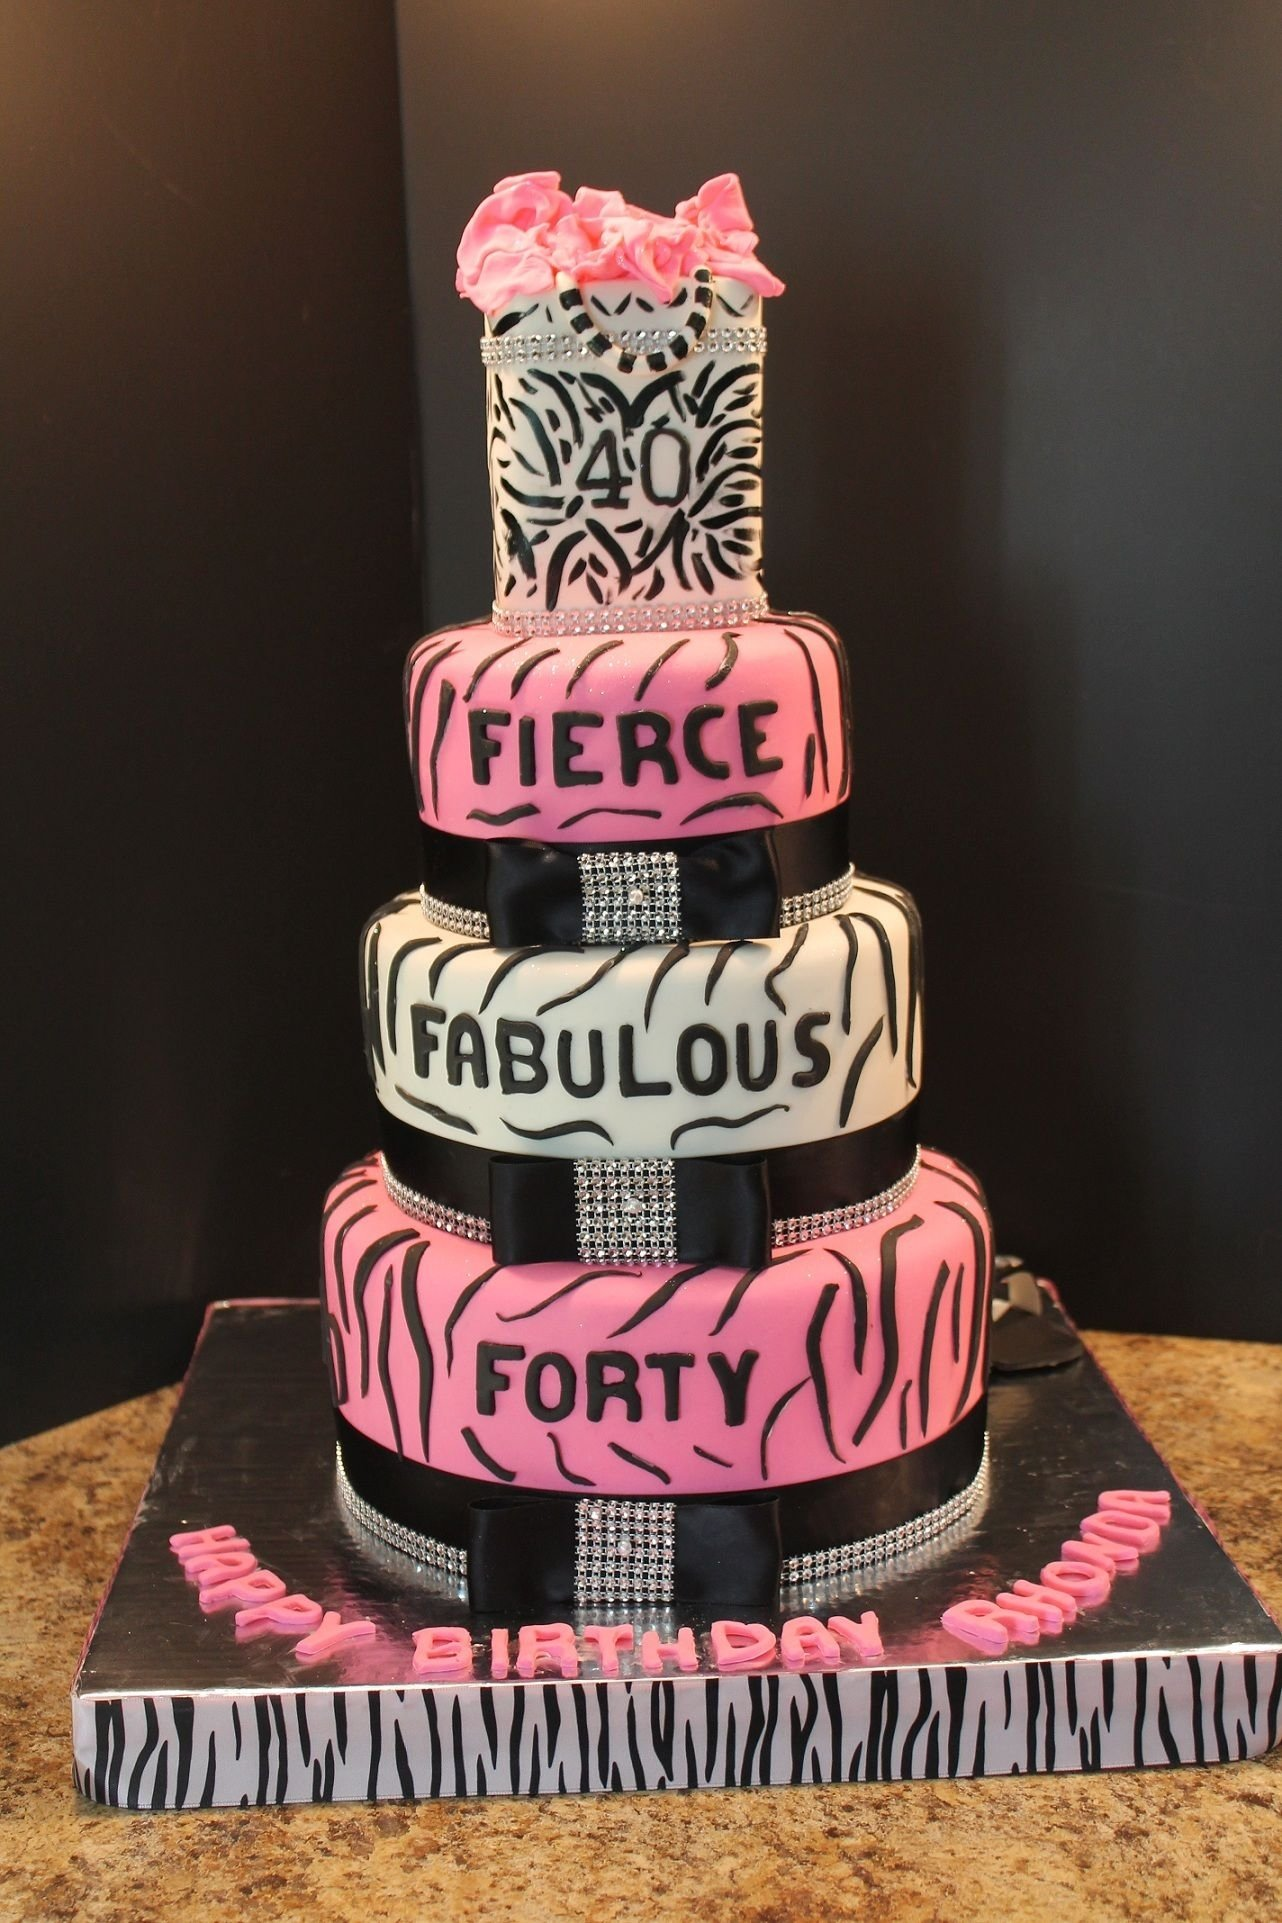 10 Most Popular Birthday Ideas For Wife Turning 40 40thbirthdaycake 40th birthday cake birthday cakes 40 50 2 2020